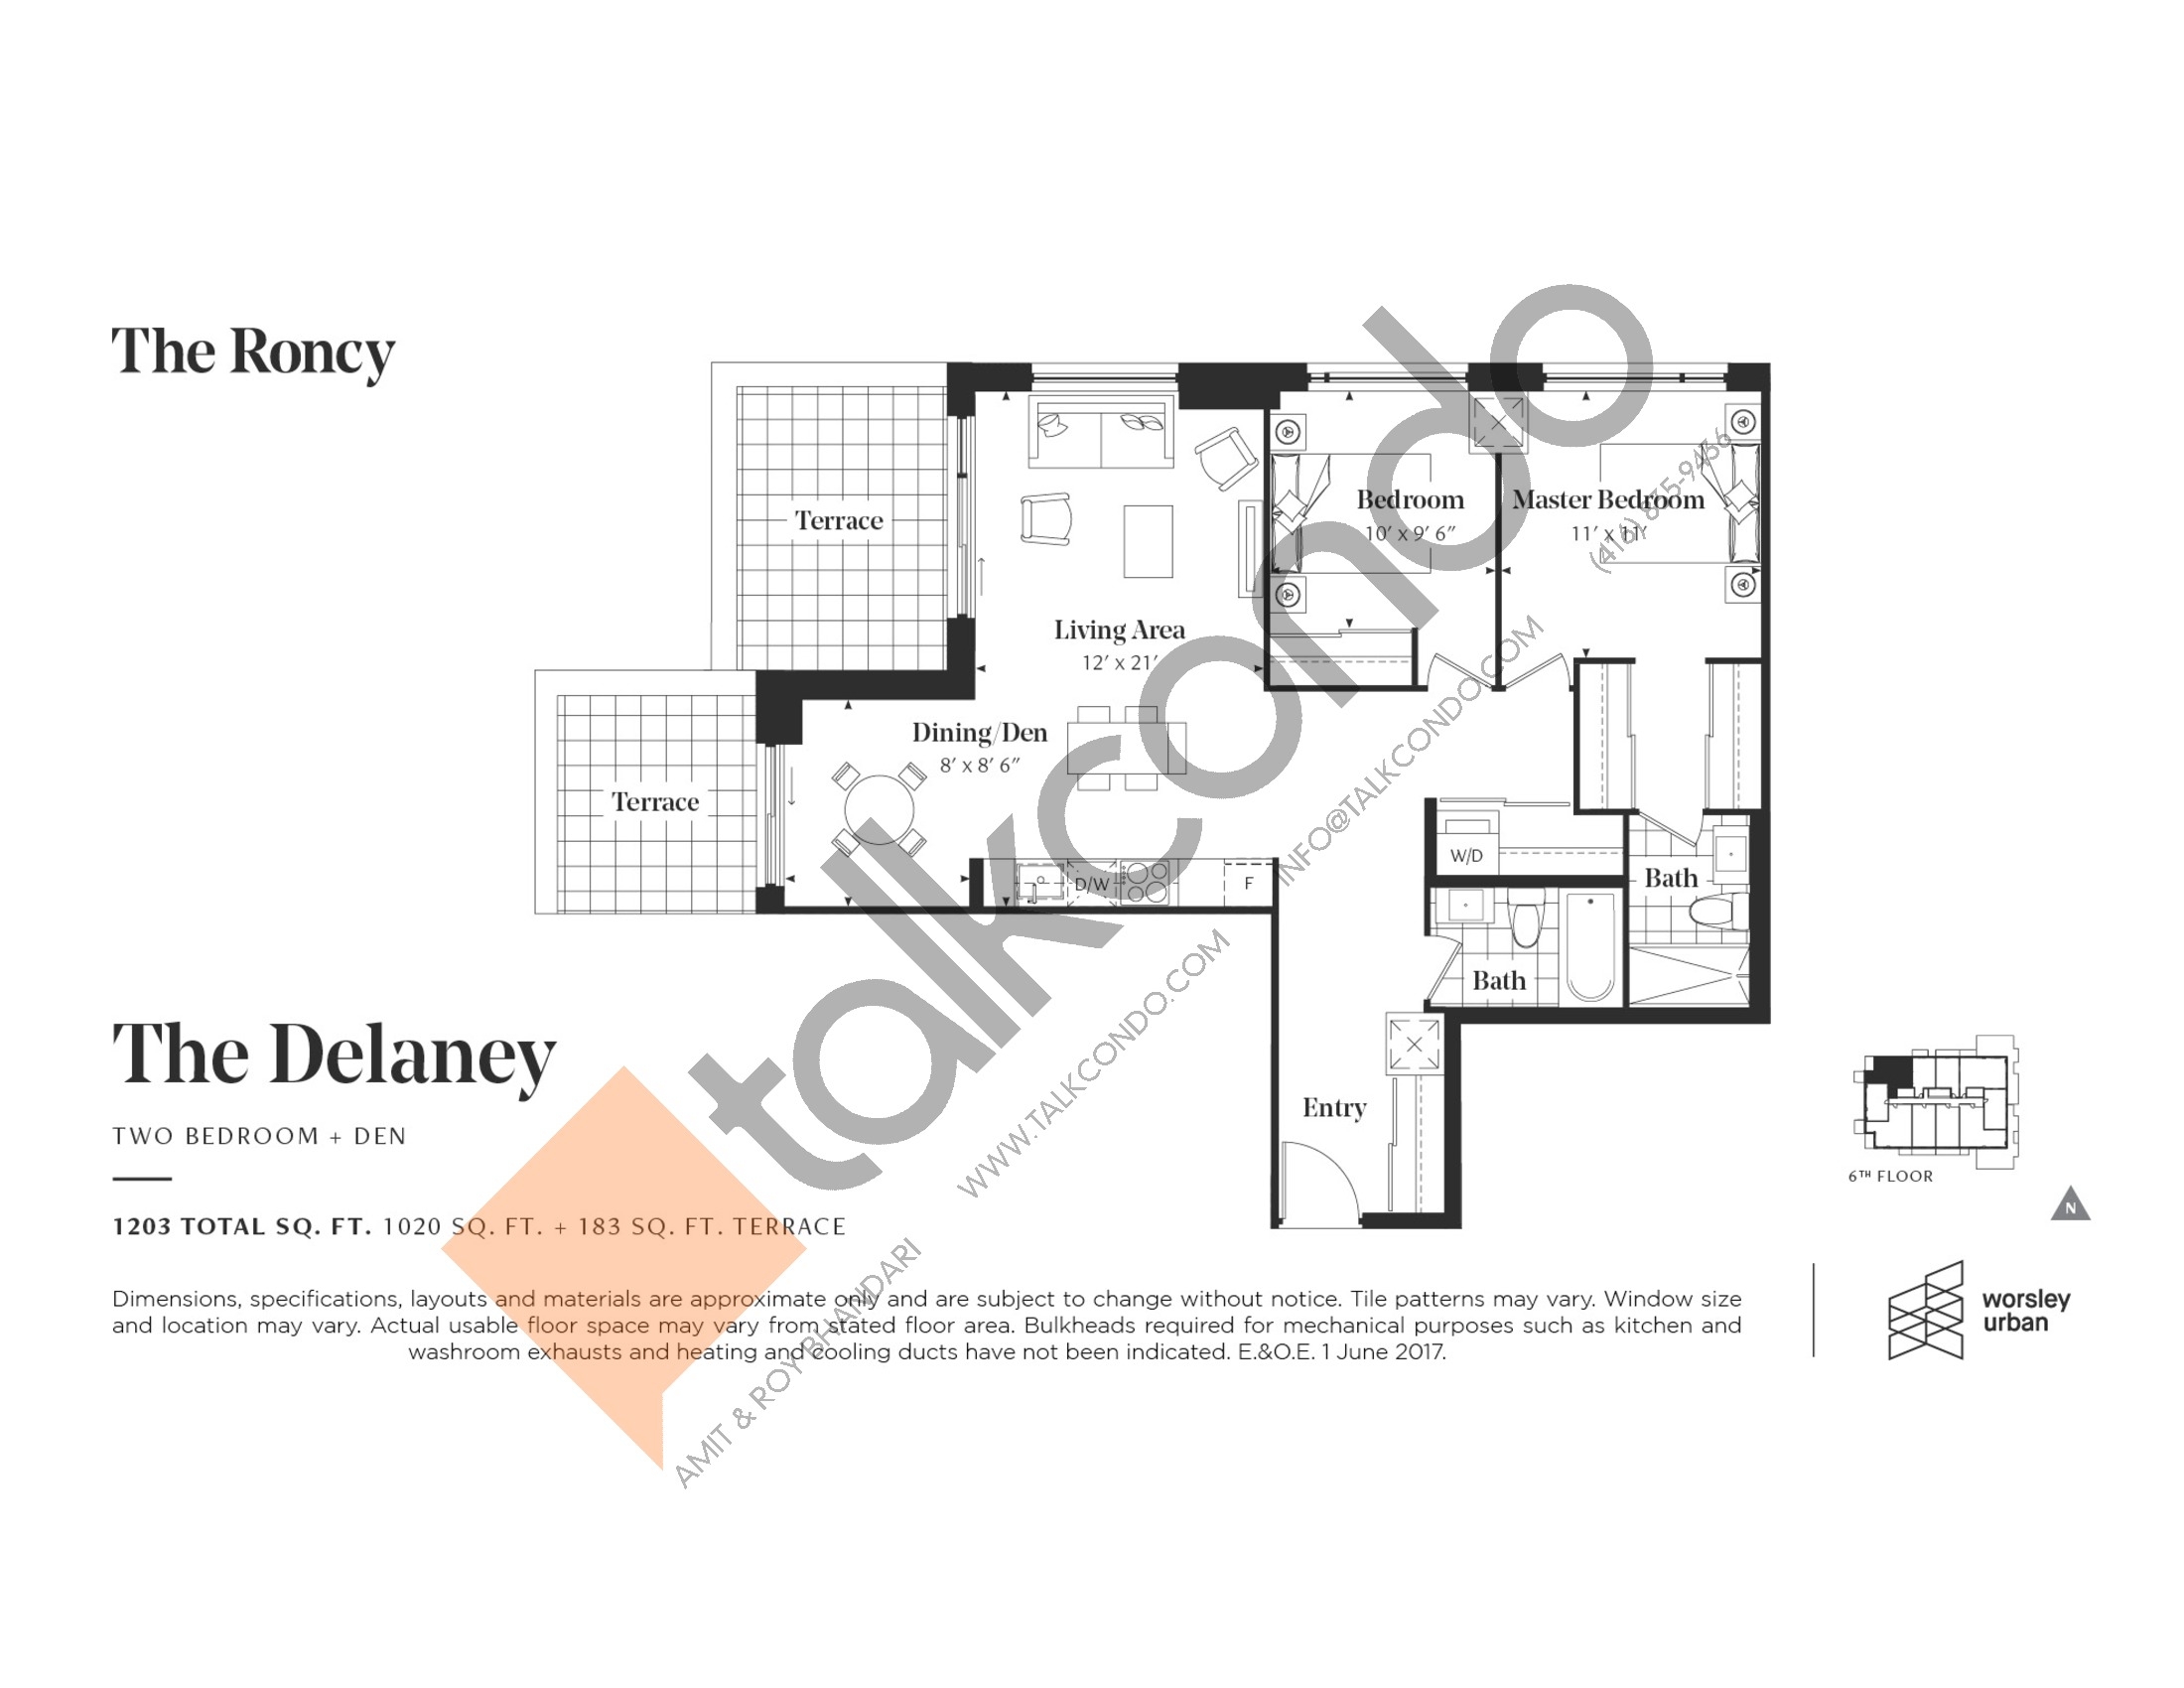 The Delaney Floor Plan at The Roncy Condos - 1020 sq.ft